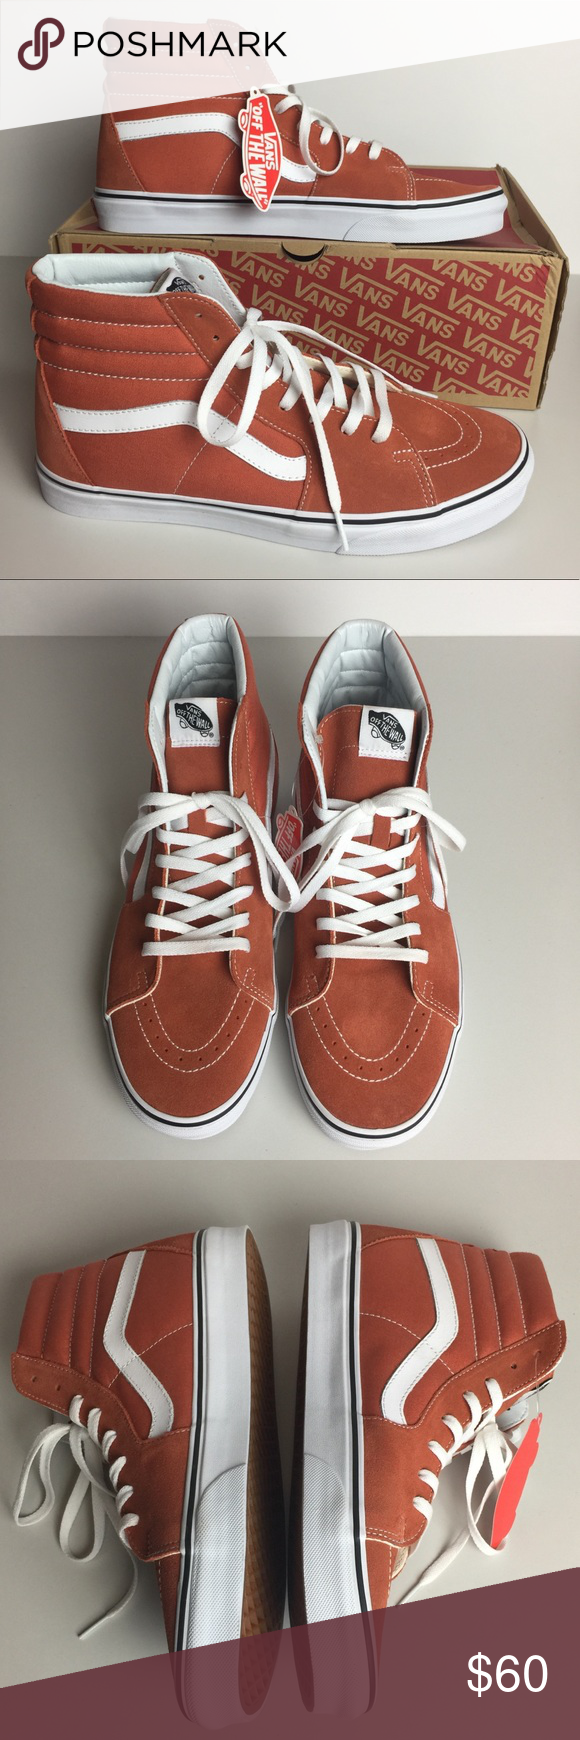 788bc67d09d Vans Men s SK8-Hi Autumn Glaze True White Vans high top skate shoes Suede  and canvas uppers with leather side stripes Re-enforced toecaps to  withstand ...